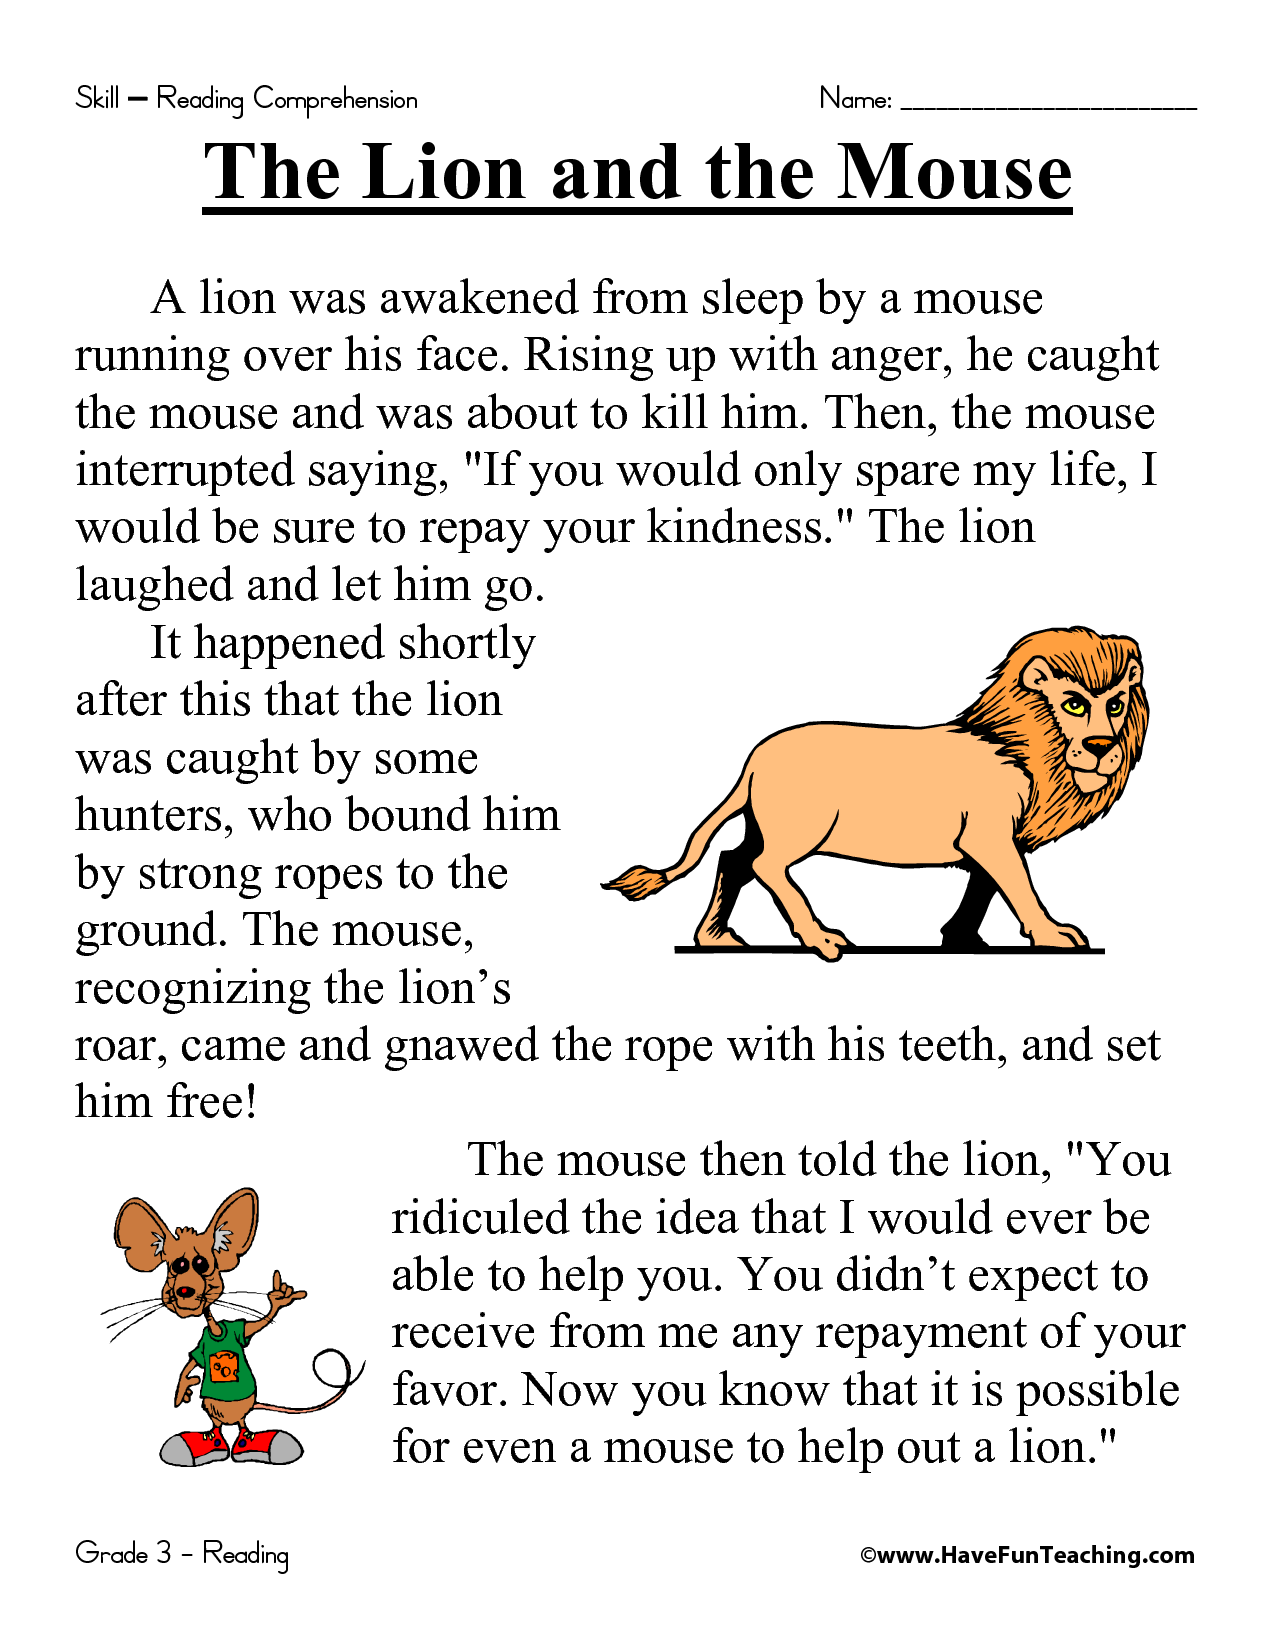 Worksheet Kindergarten Comprehension Worksheet printable reading comprehension worksheets inc exercises for first grade the lion and mouse worksheet